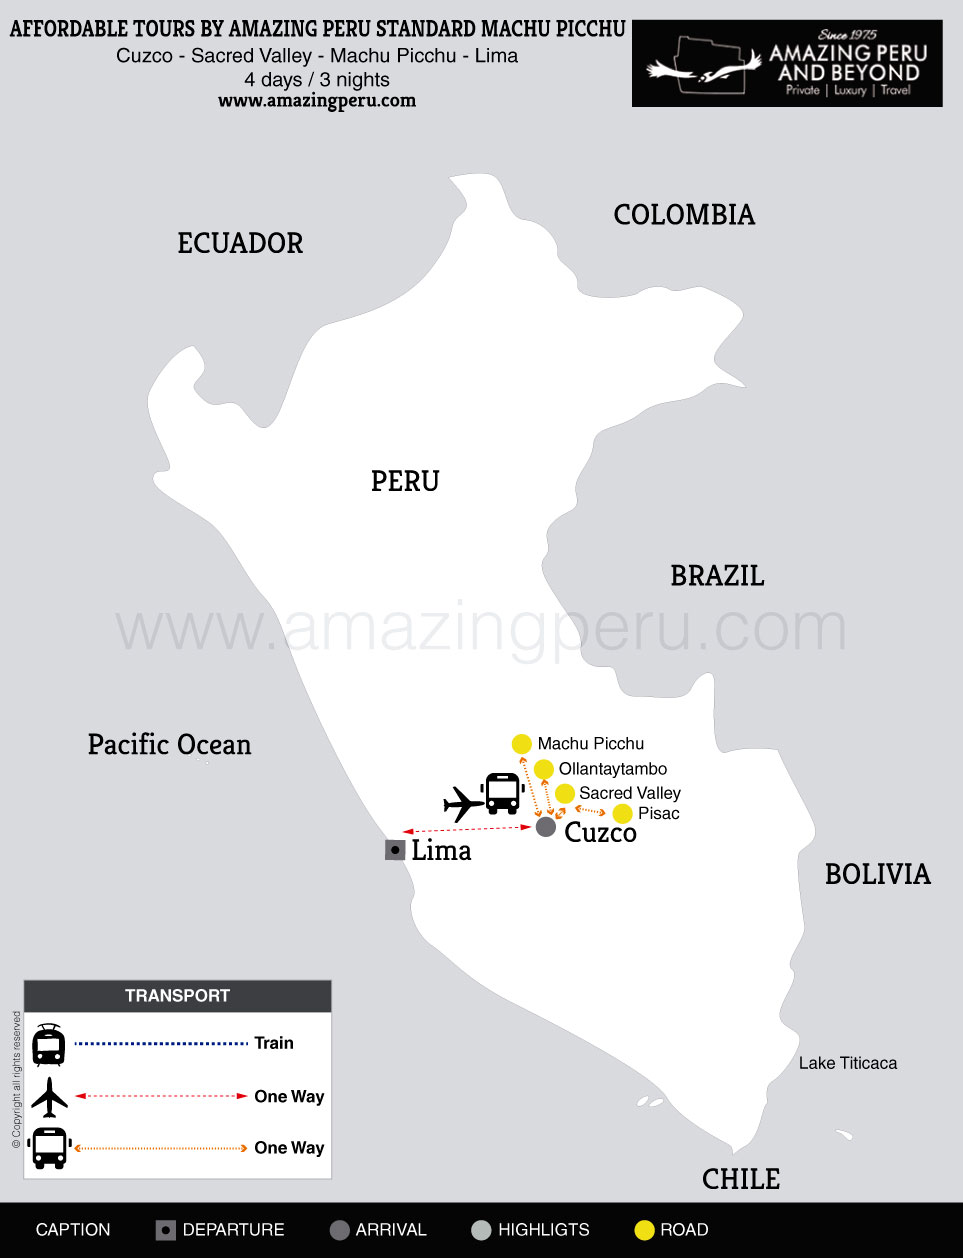 2015 Affordable Tours by Amazing Peru Standard Machu Picchu - 4 days / 3 nights.